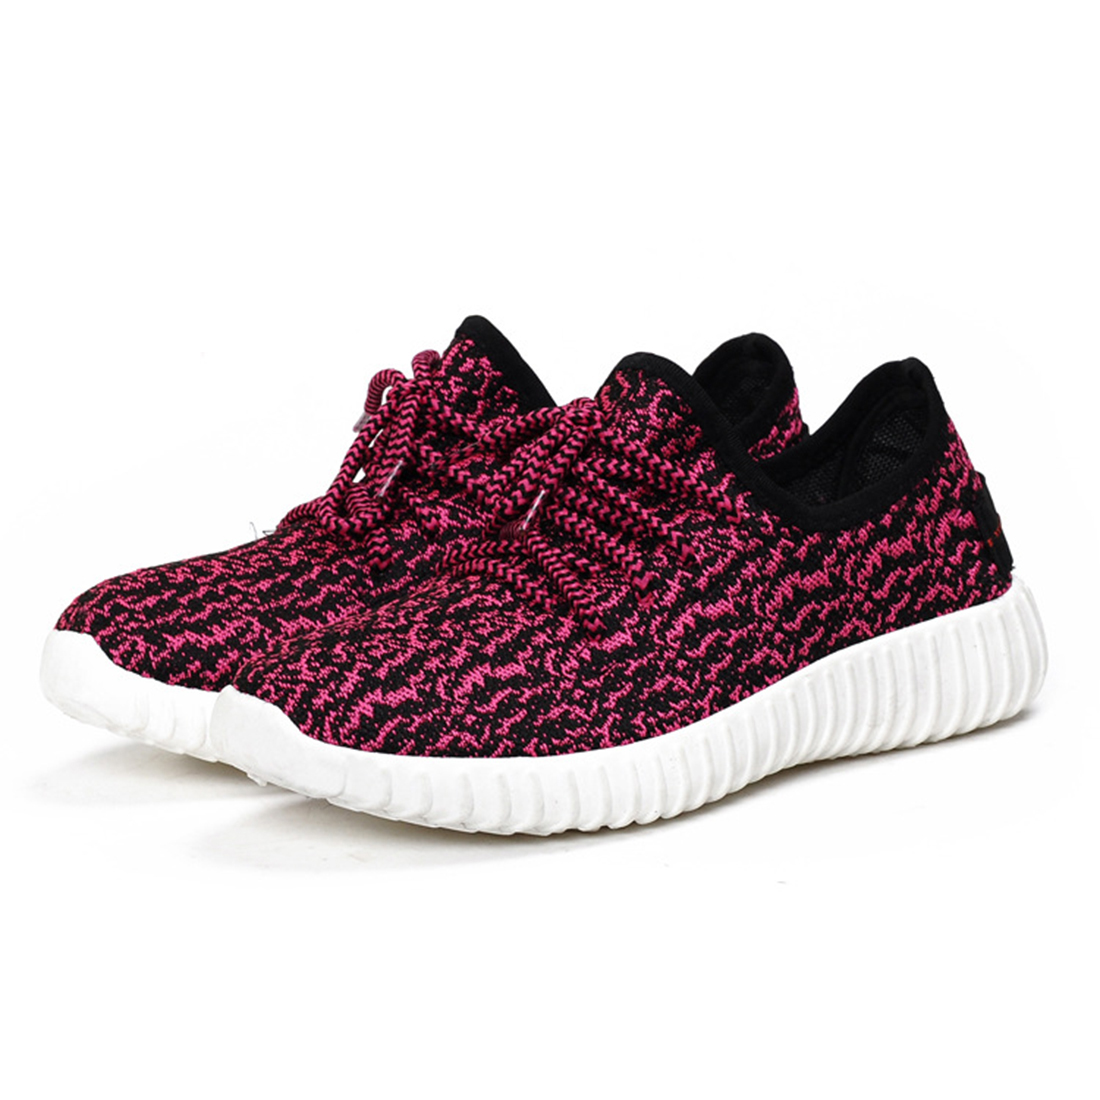 sapatos women fashion sport mesh shoes cool lady flat shoes female leisure summer comfortable slip on shoes zapato de mujer